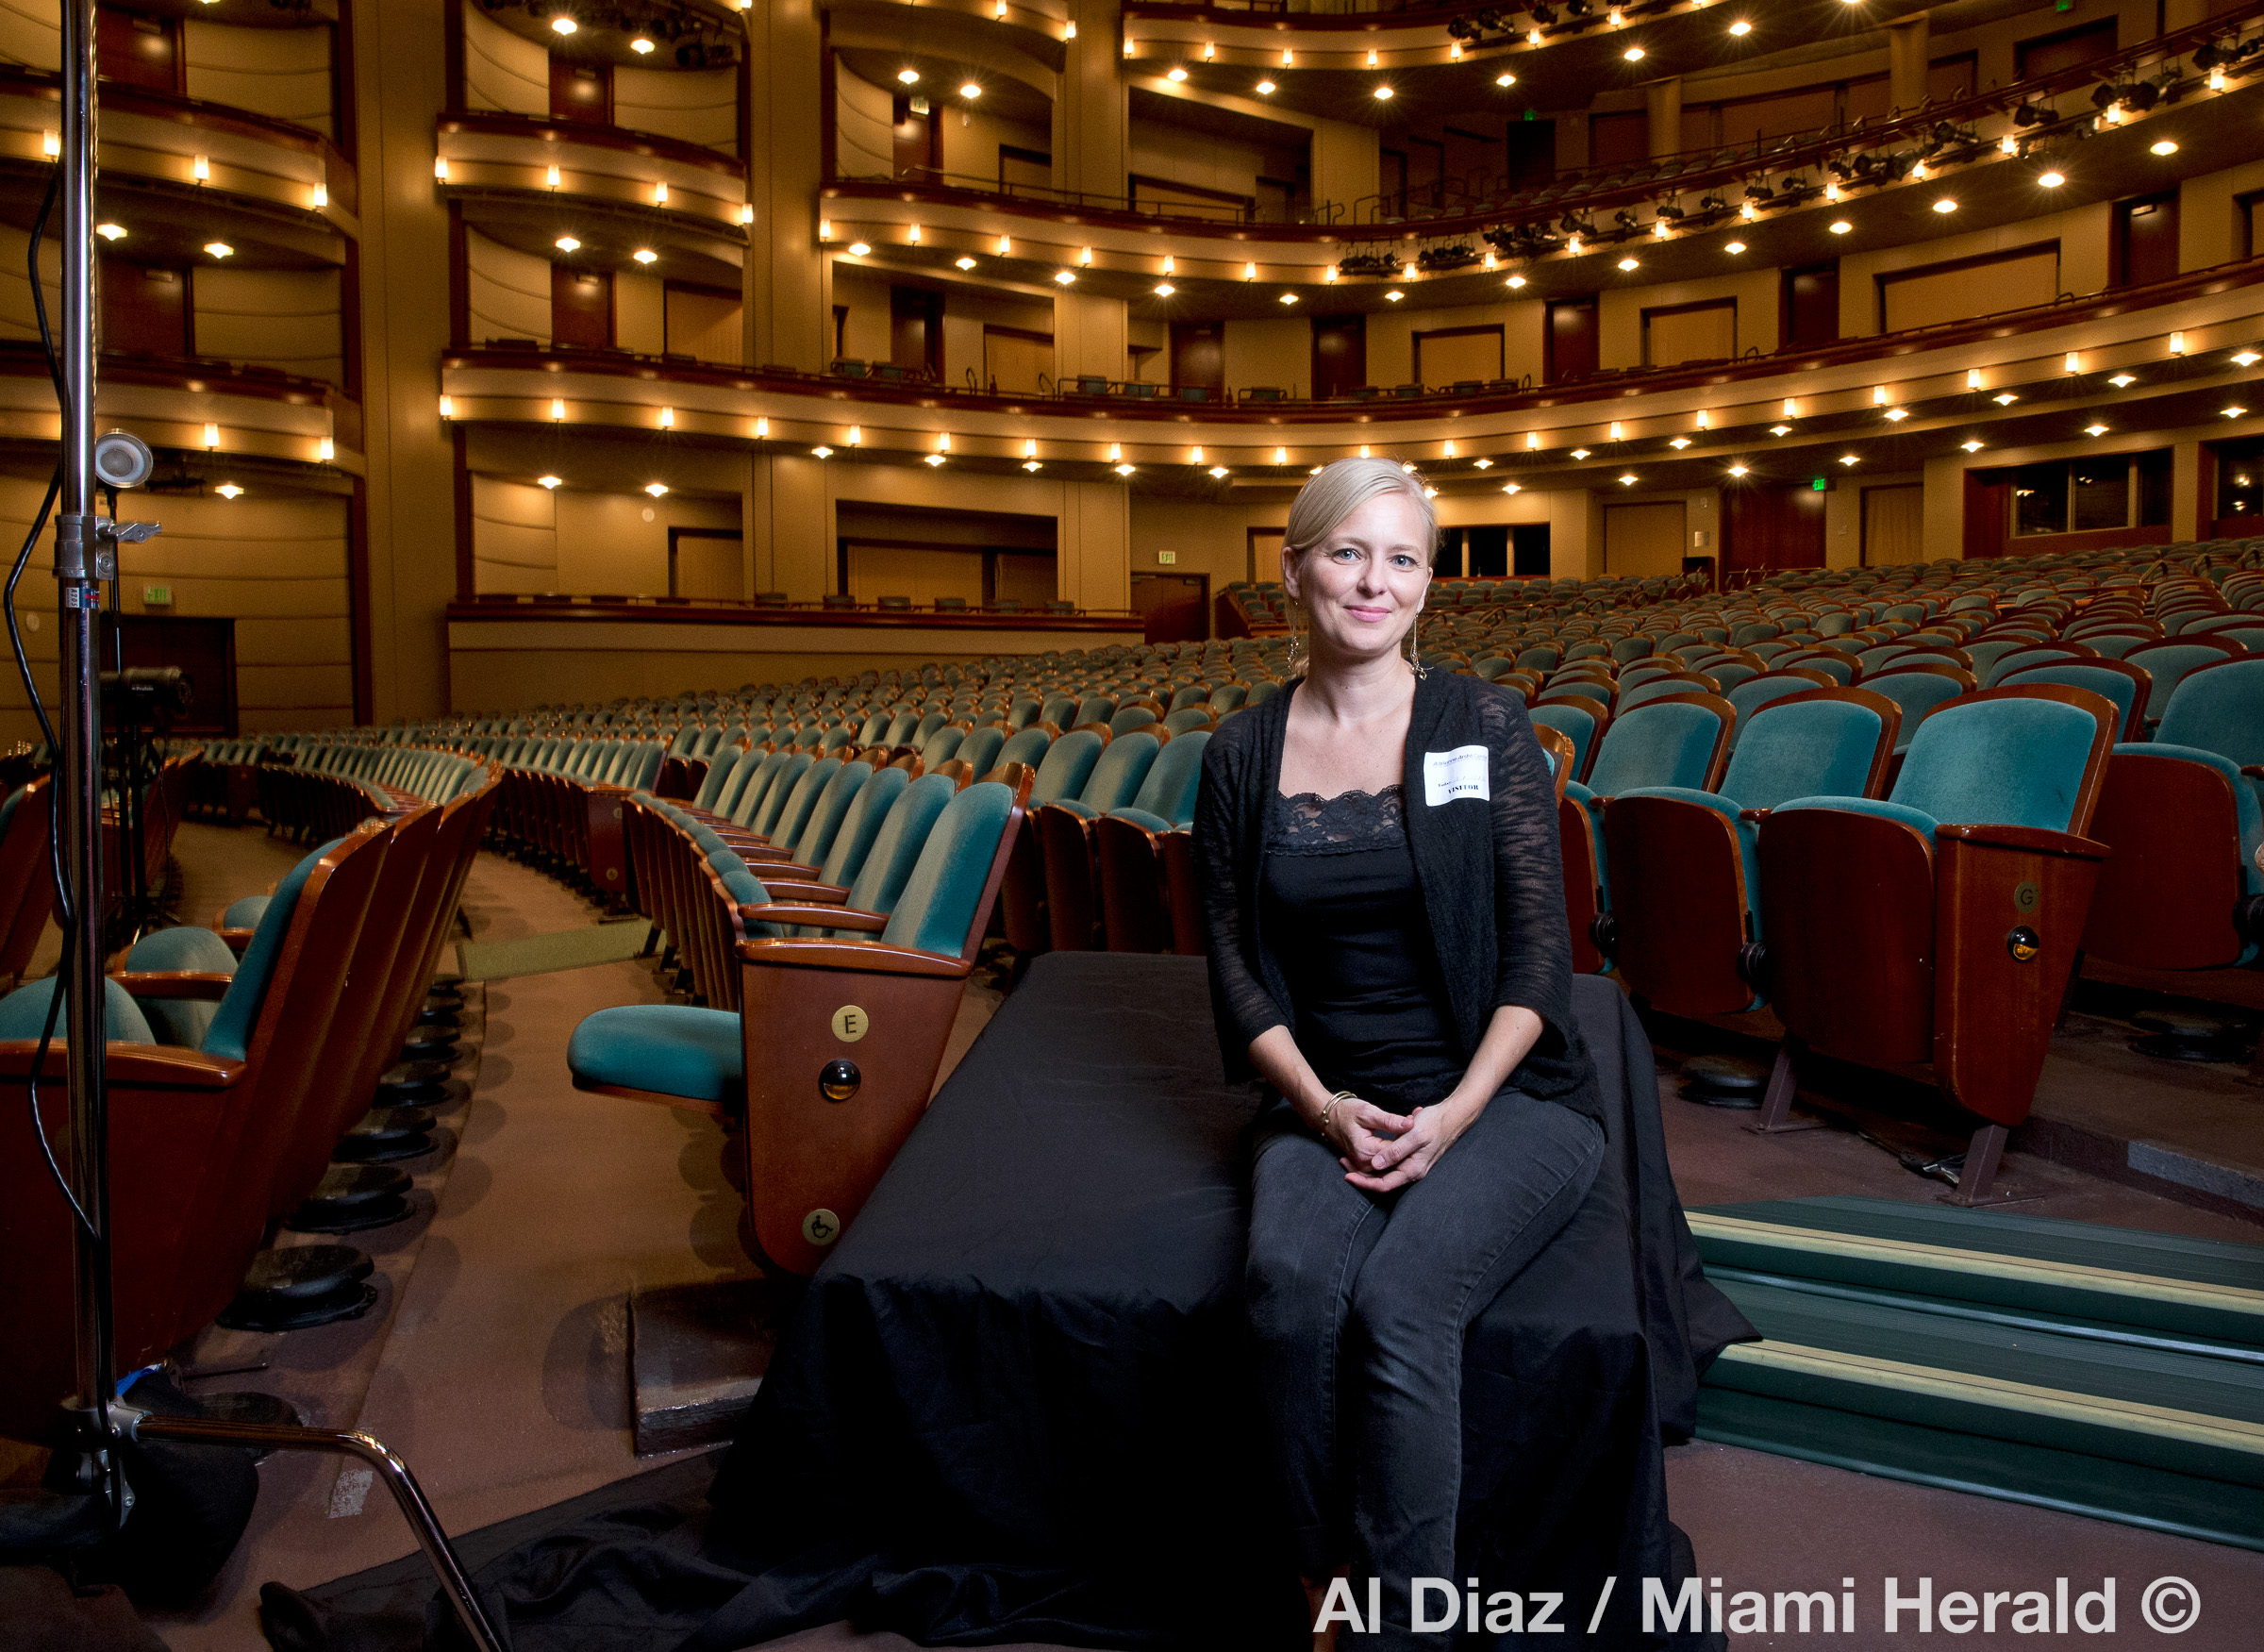 Me sitting on our photography set inside the grand Ziff Ballet Opera House after wrapping a successful shoot for the Miami Herald. I was literally thinking how much I missed spending time shooting inside theatres.  Much thanks to Al Diaz of the Miami Herald for taking this photo.